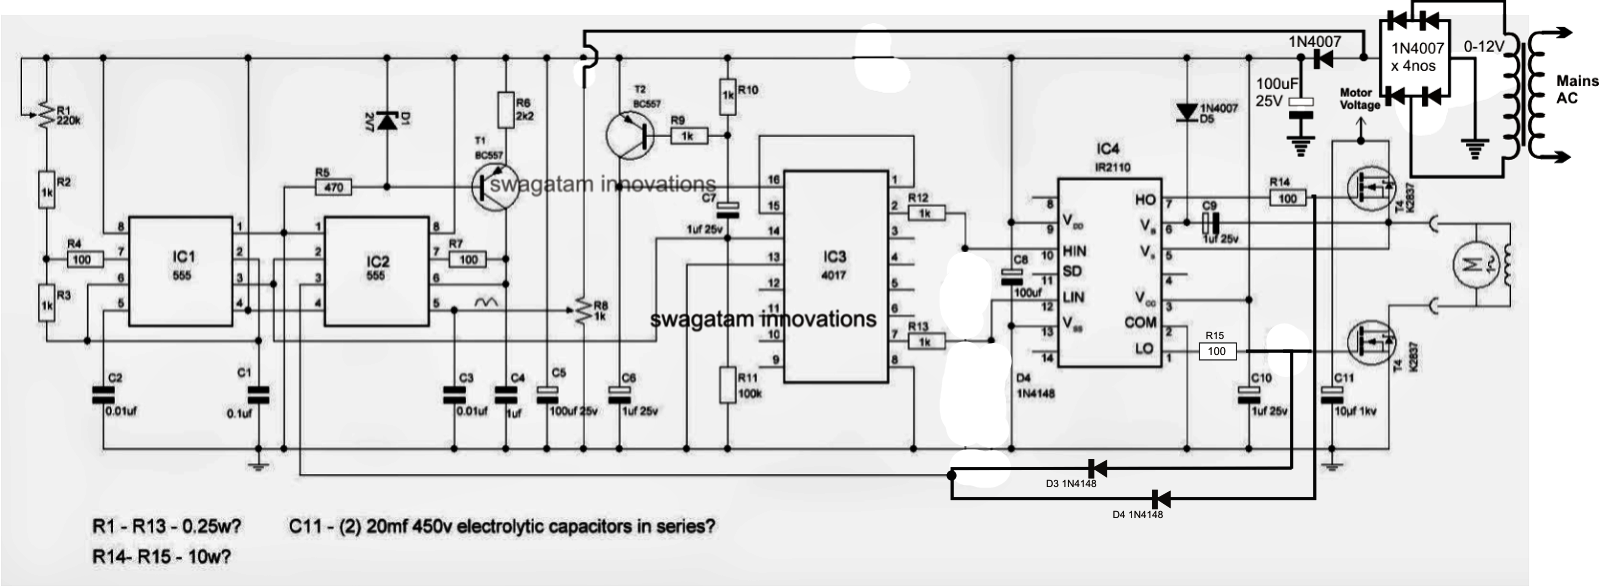 31798 Repulsion Start Induction Run Motor further Single Phase Variable Frequency Drive likewise Driving Three Phase Motor On Single additionally Car Starter Motor Diagram further Rcd Wiring Diagram. on single phase circuit diagram